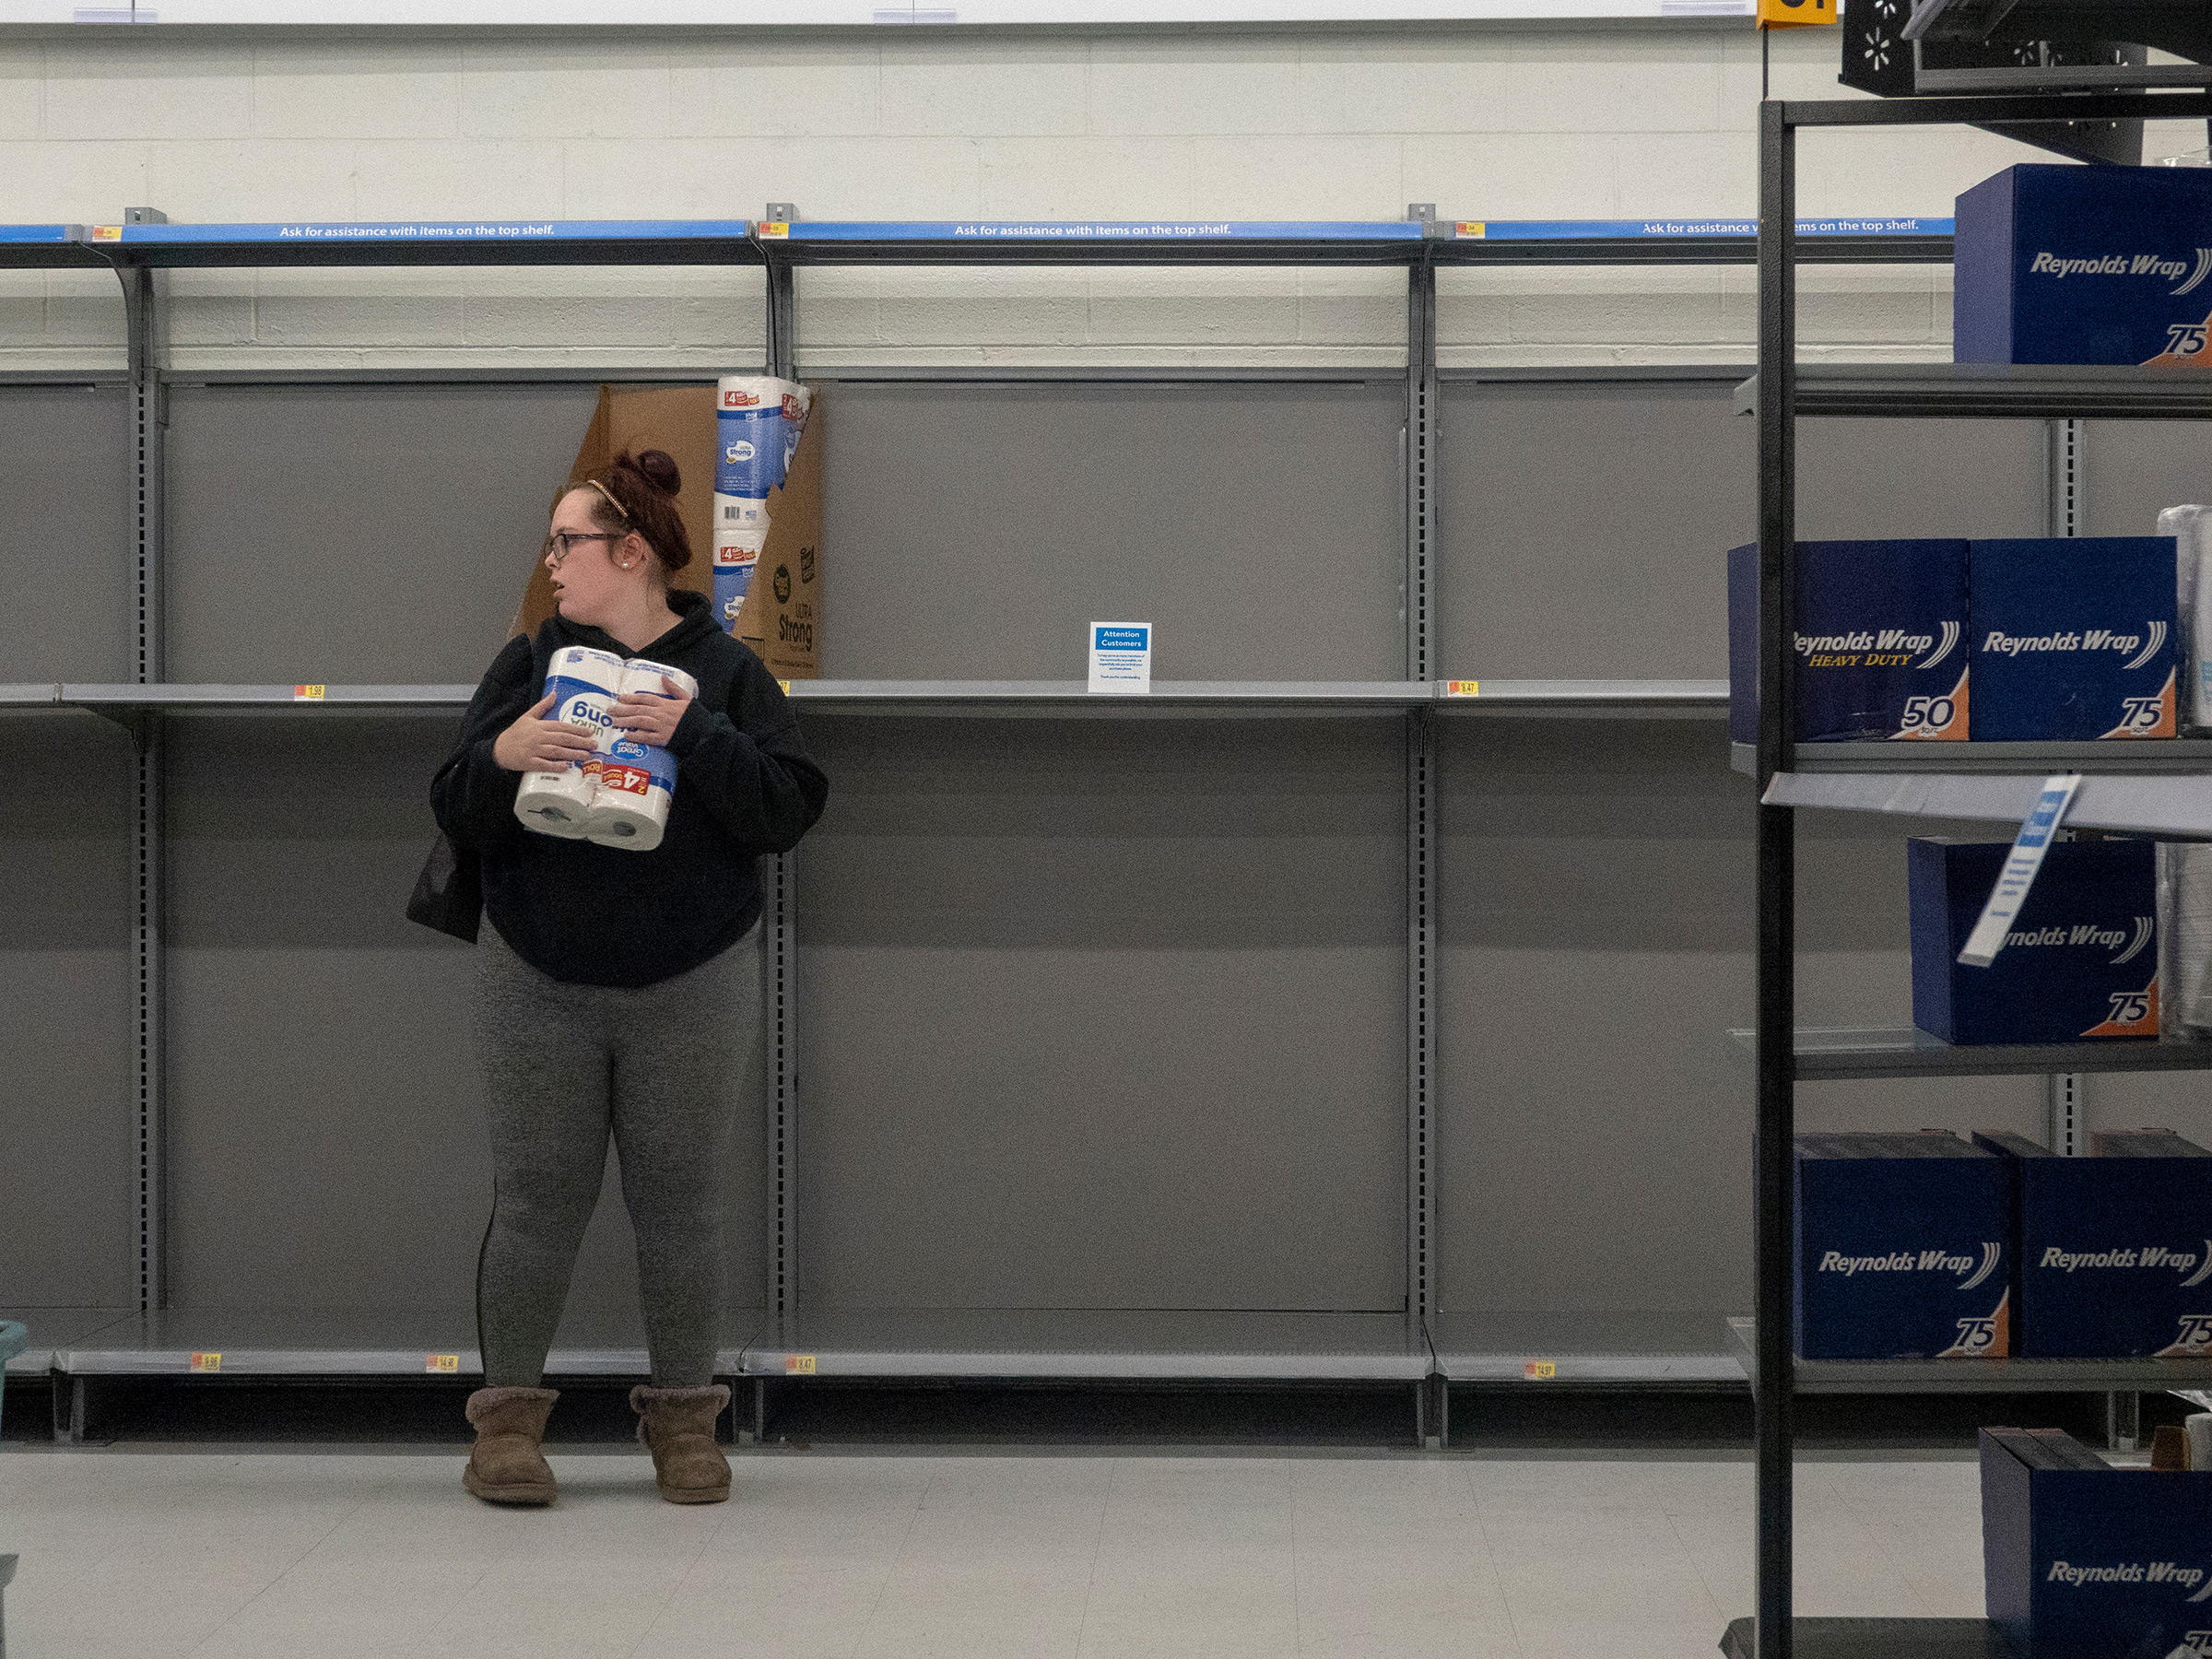 Easton, Md., March 28, 2020. A nearly empty toilet paper and paper towel aisle during the coronavirus lockdown.